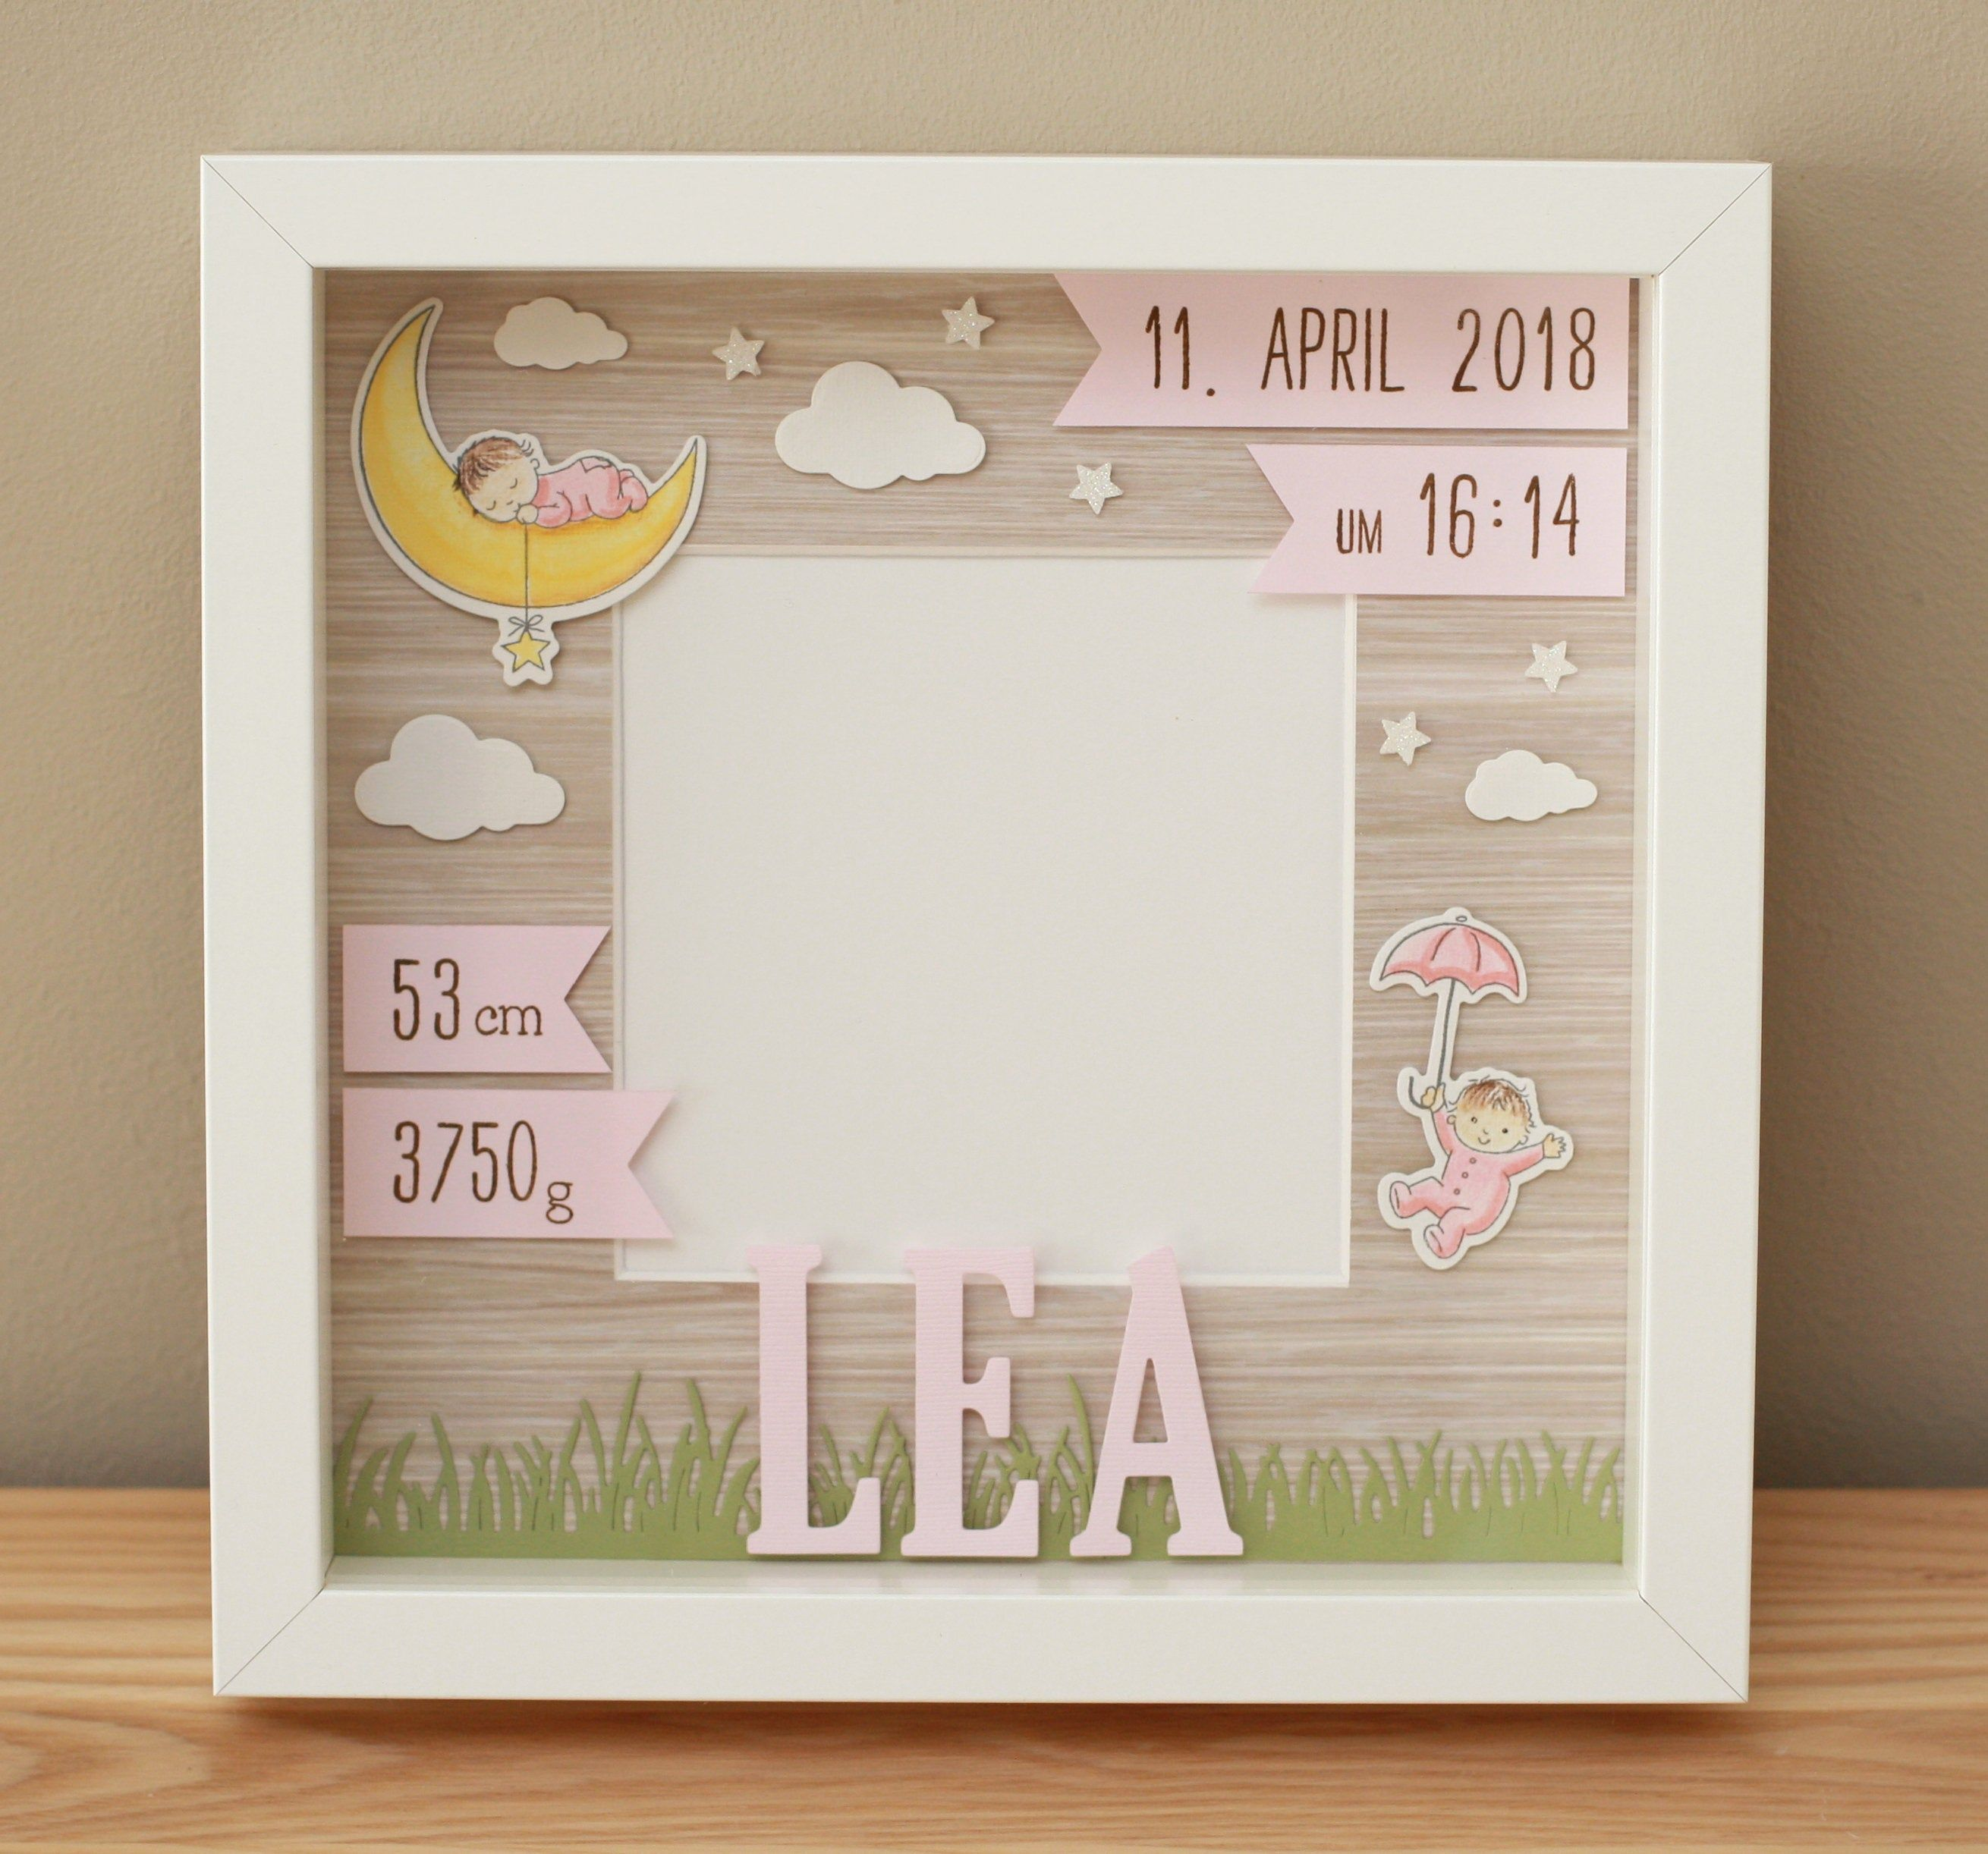 Personalized Gift For Birth In Frame Baby Frame Baptism Etsy Baby Frame Baby Room Colors Father S Day Diy